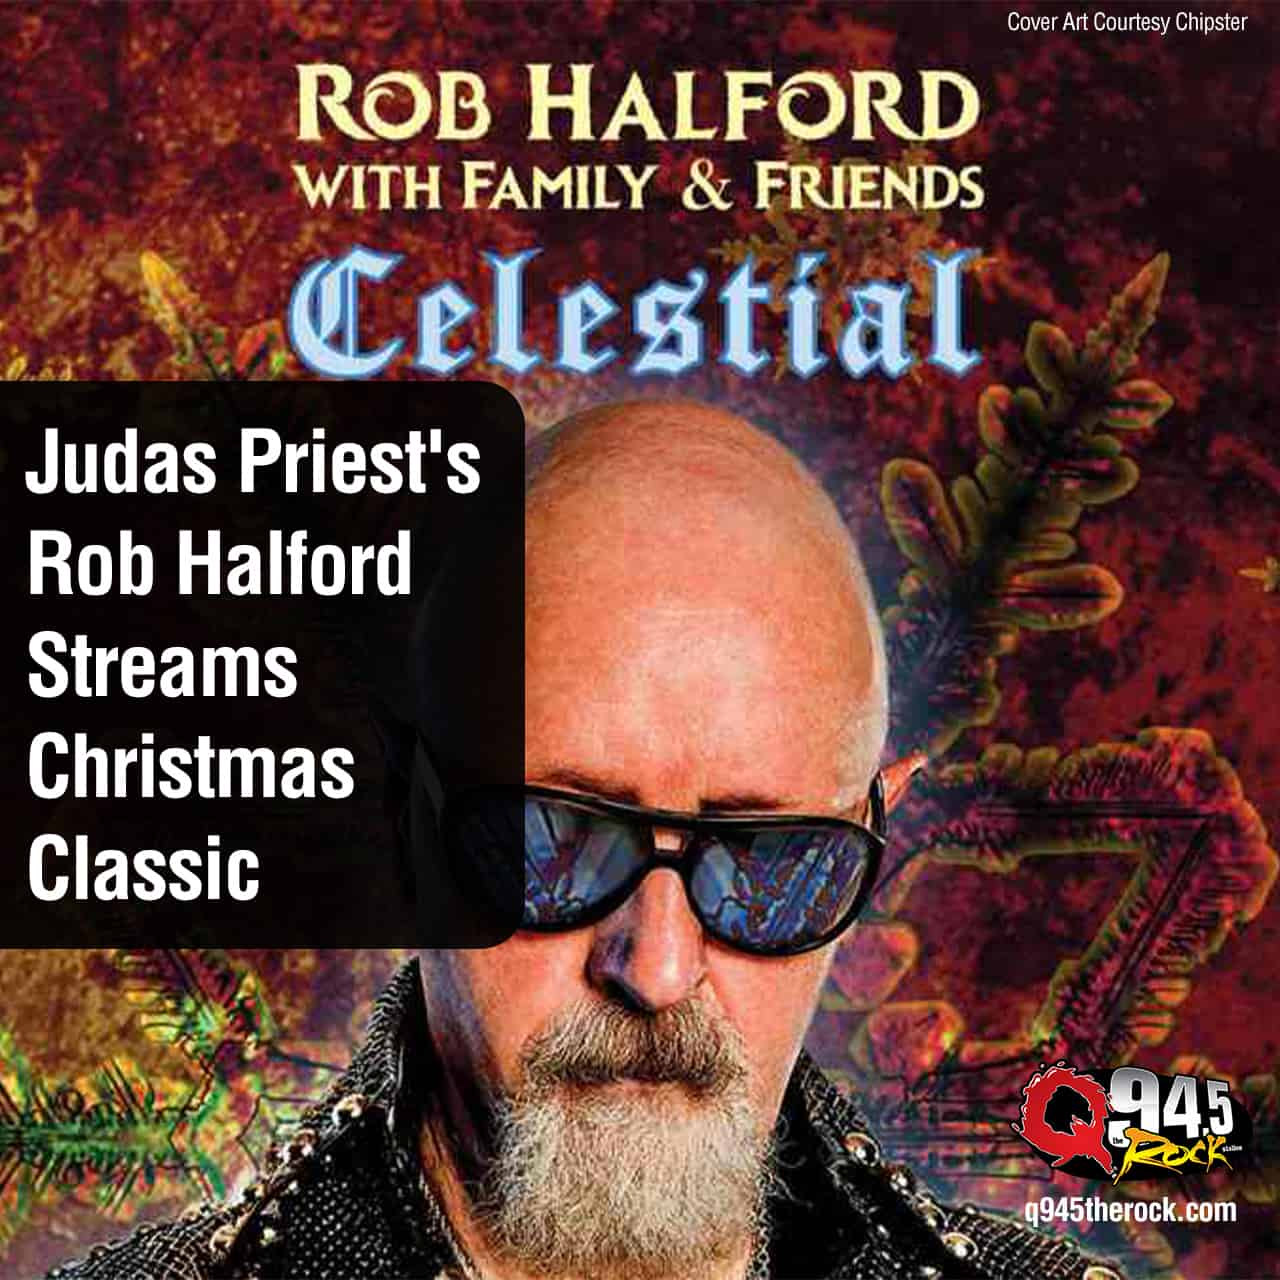 Judas Priest's Rob Halford Streams Christmas Classic